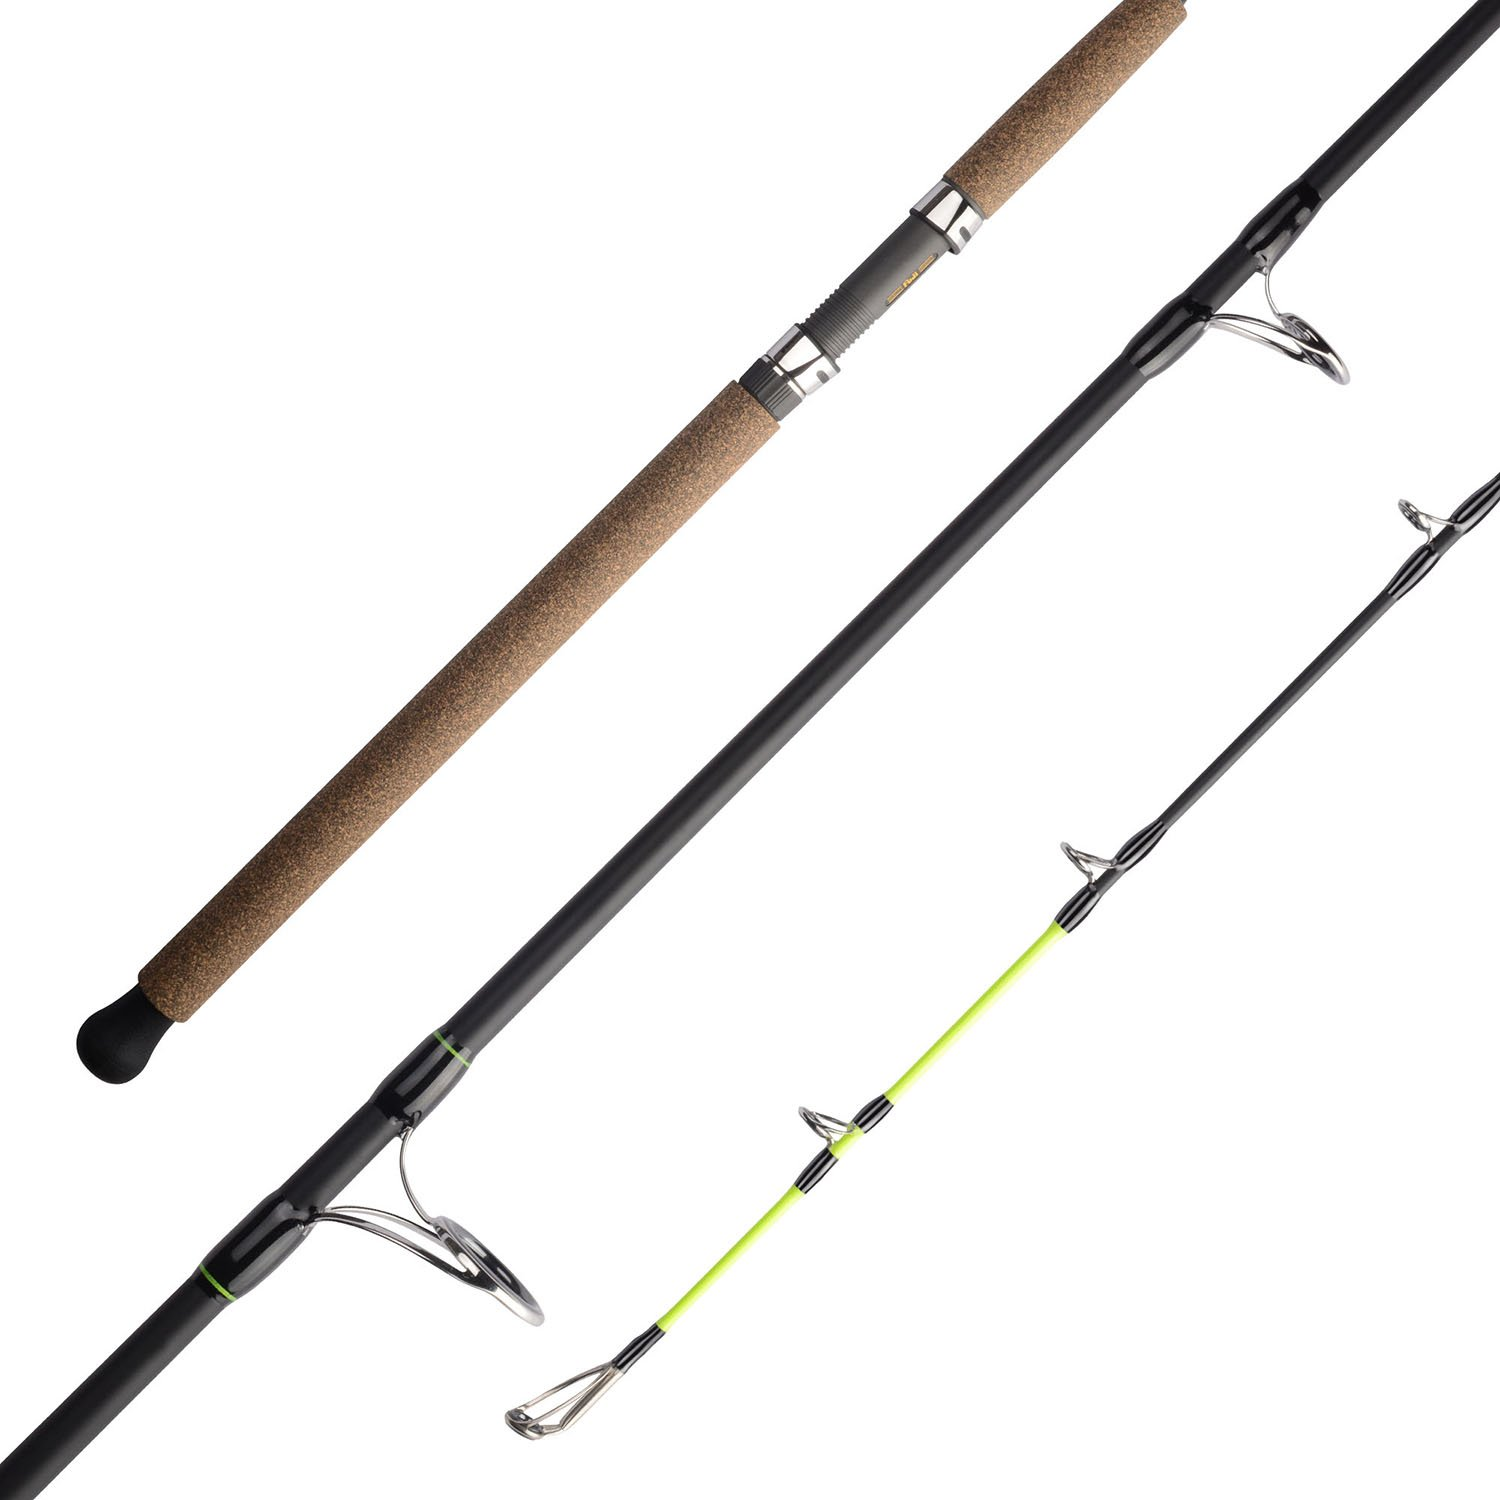 KastKing KatTech Catfish Rods, Powerful and Lightweight Graphite Composite Blank, Fuji Guides w SiC Rings, Fuji Reels Seats, Custom Rubber Cork Handles, Chartreuse Strike Tips